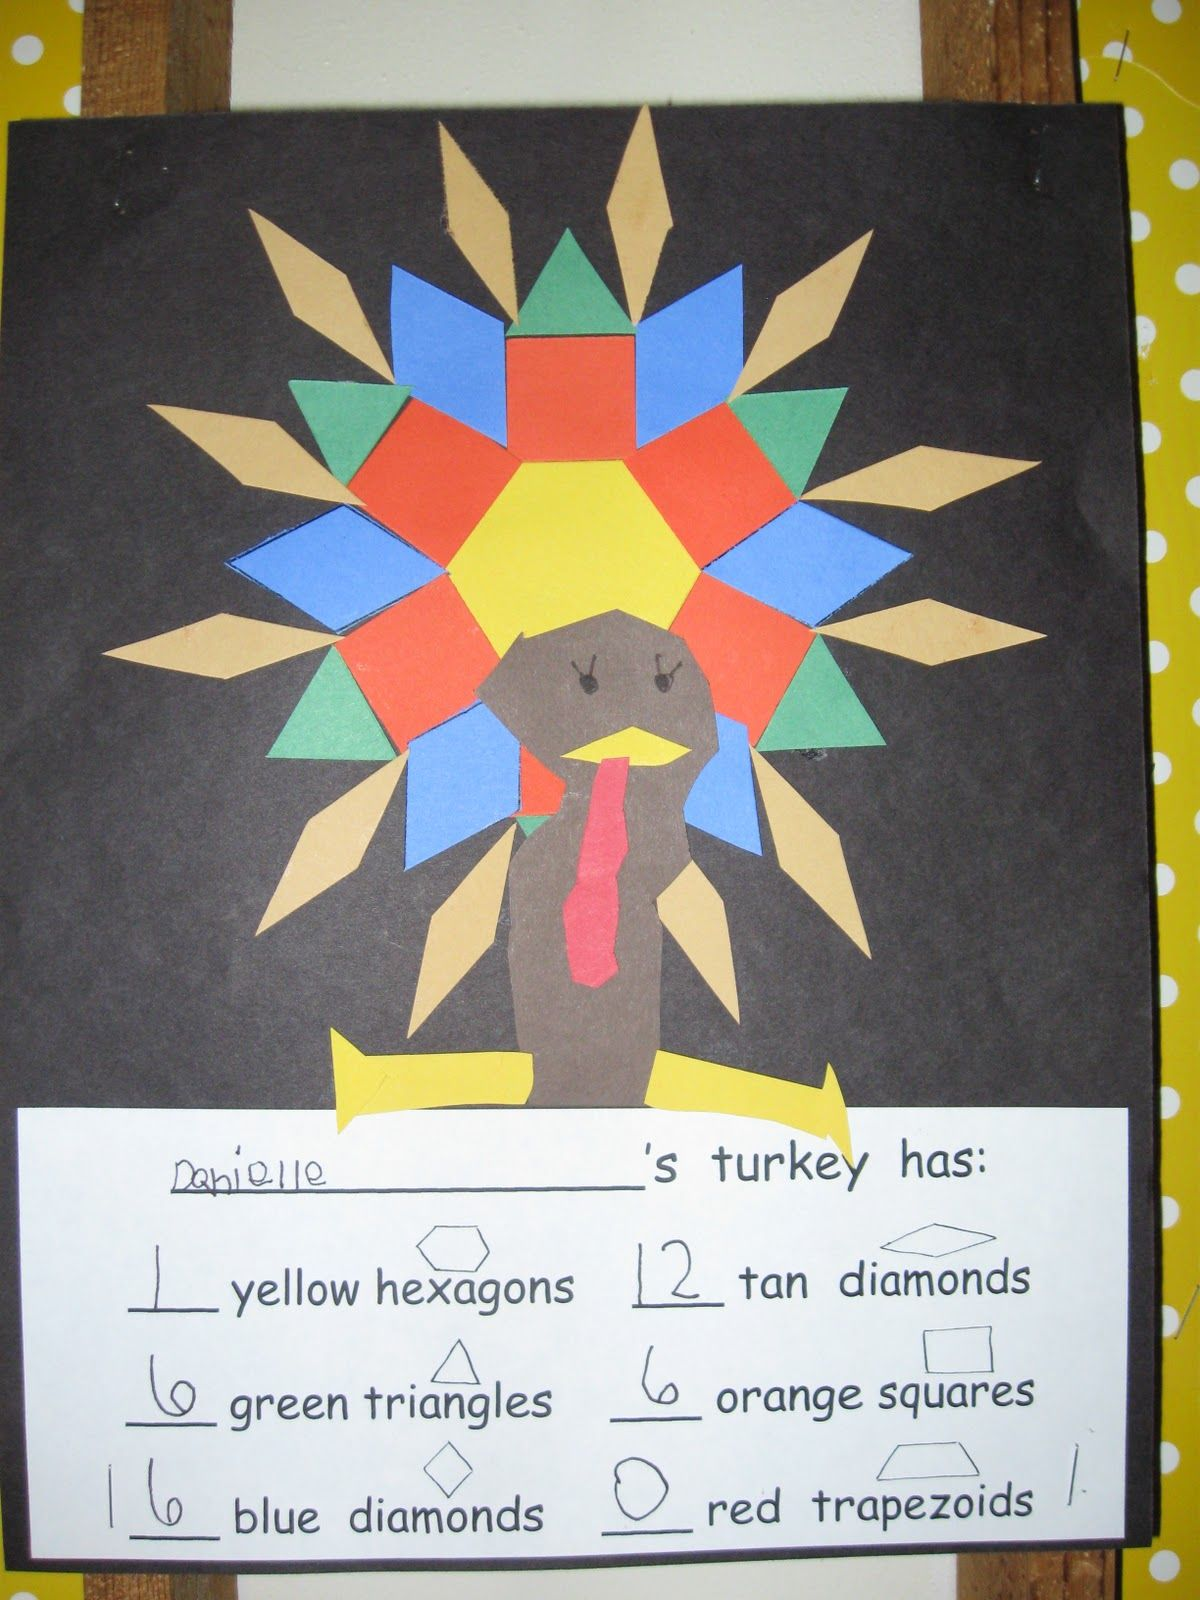 Pattern Block Turkey Just Change Diamond To The Correct